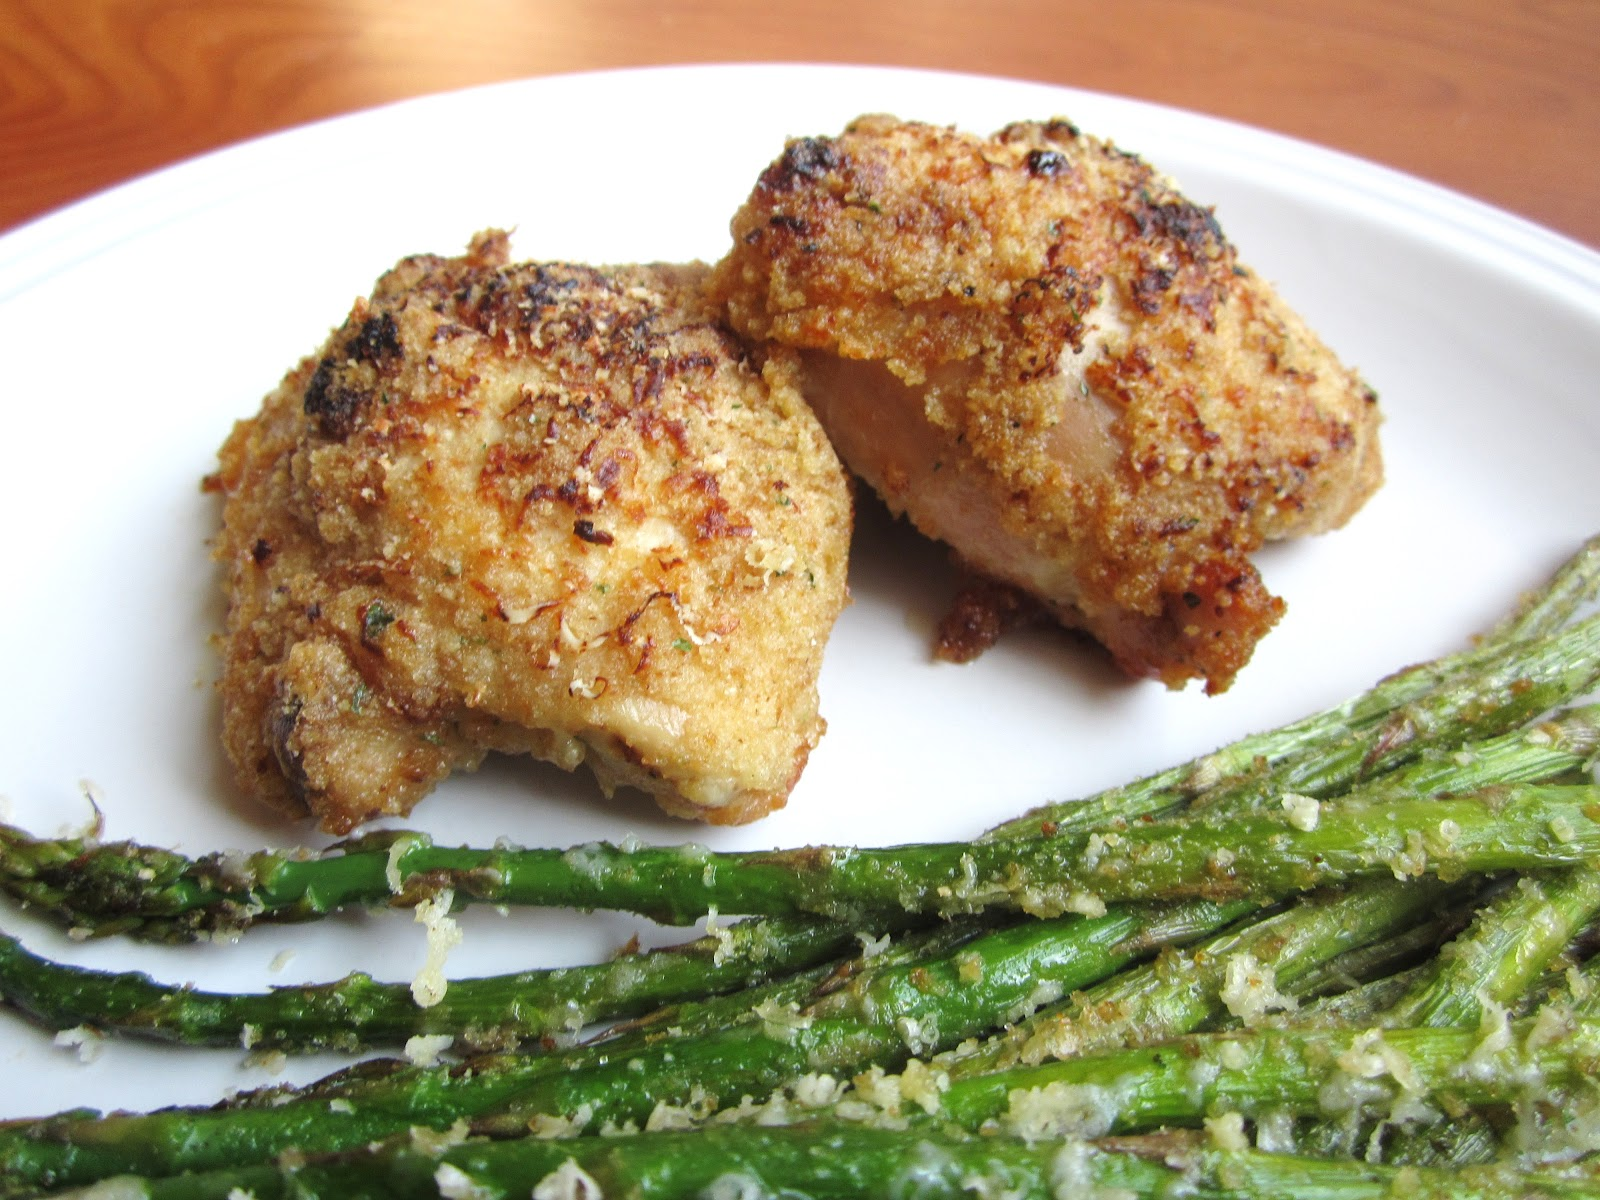 Sue Chef: Honey Baked Chicken Thighs with Parmesan Crusted Asparagus